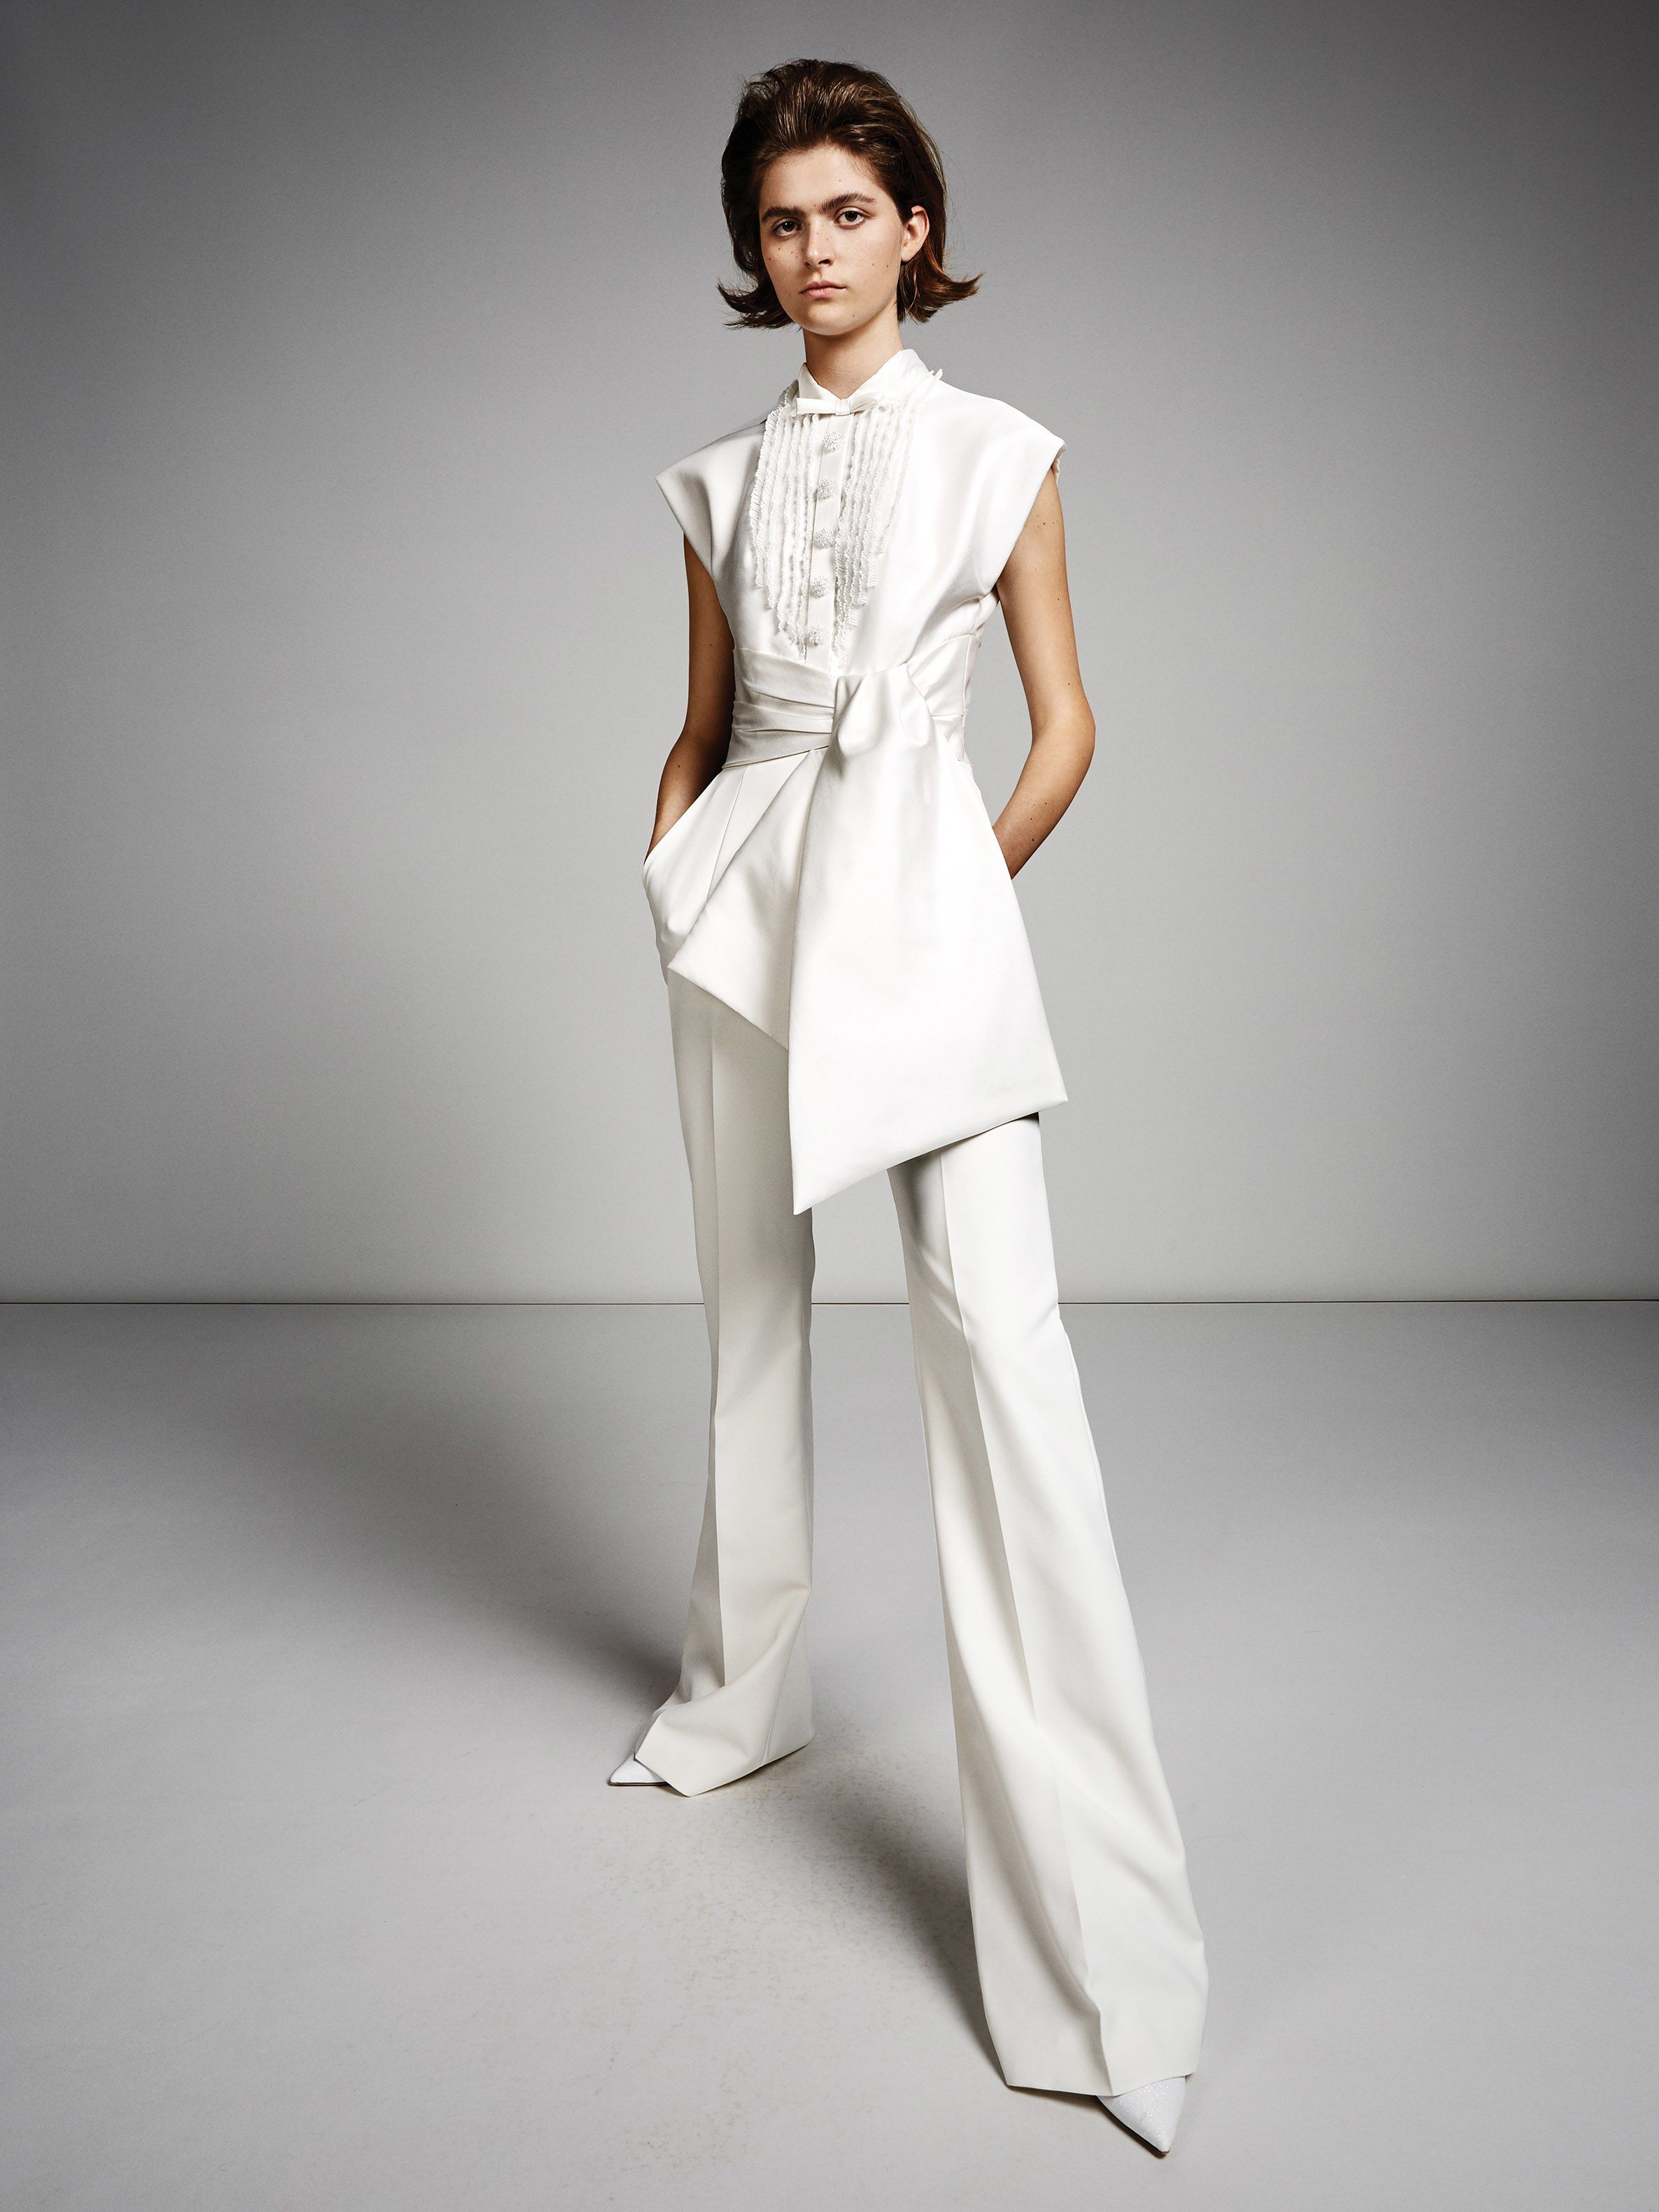 Mariage by Viktor & Rolf Bridal & Wedding Dress Collection